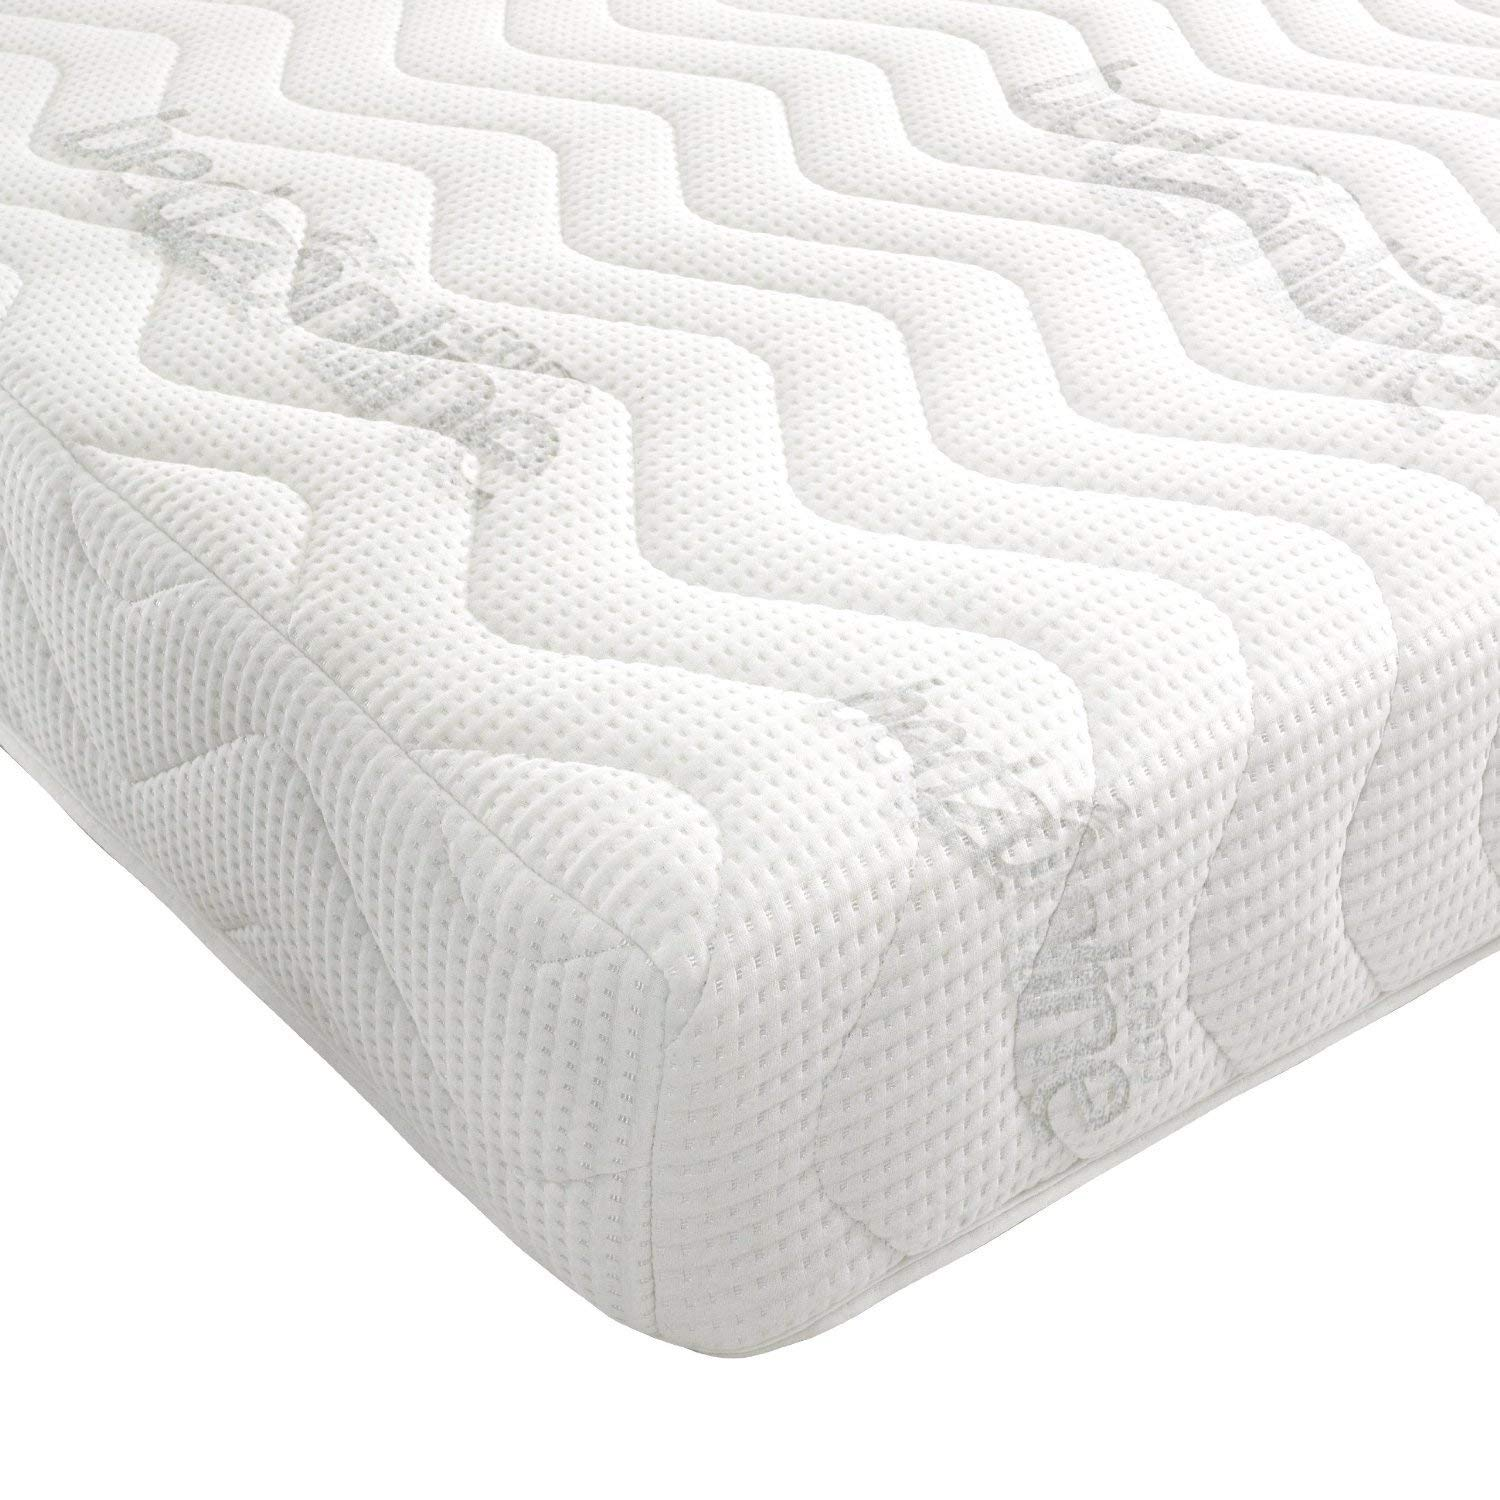 bedzonline European Size Double 200x140cm Memory Foam Mattress - All standard